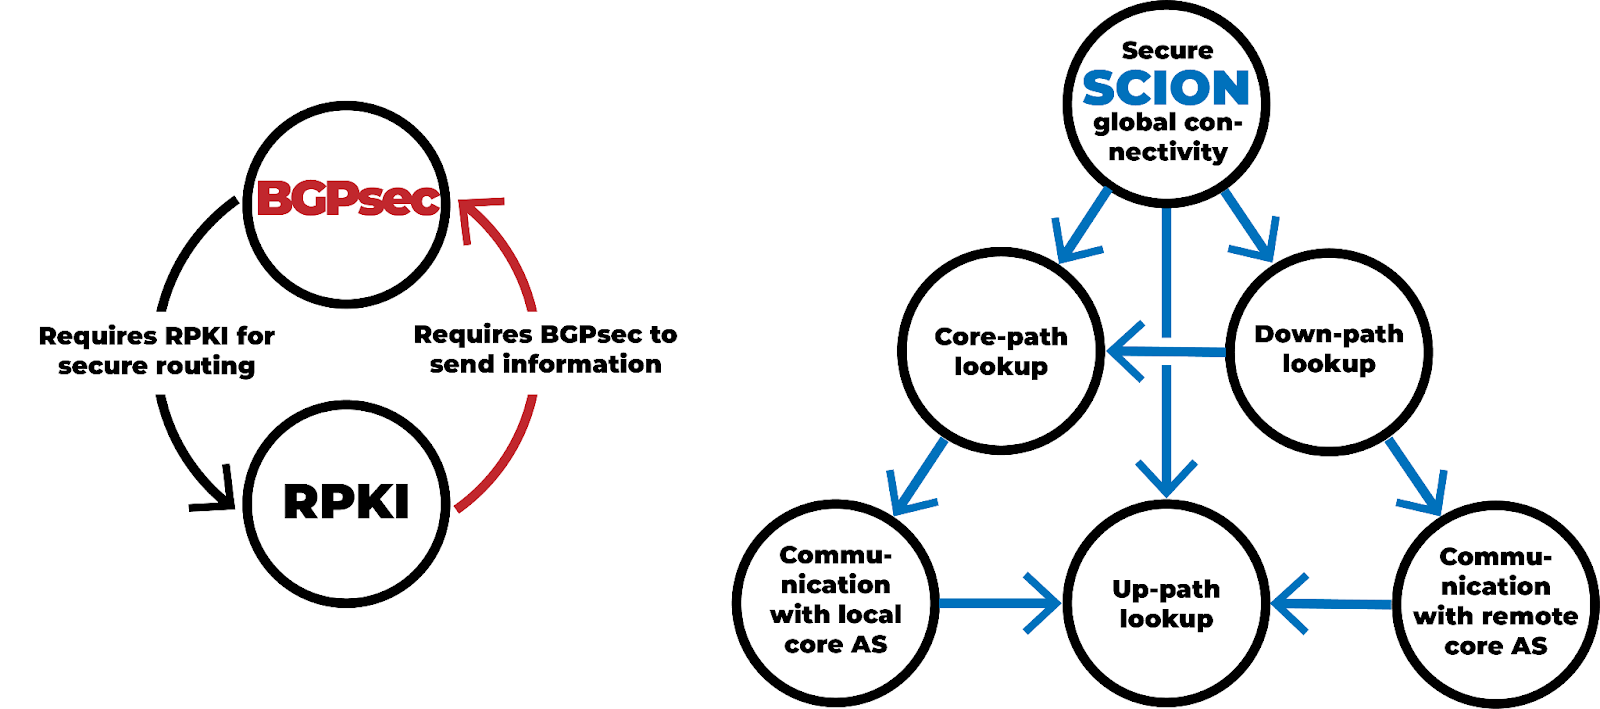 SCION dispenses with the circular dependencies that slowed down BGP